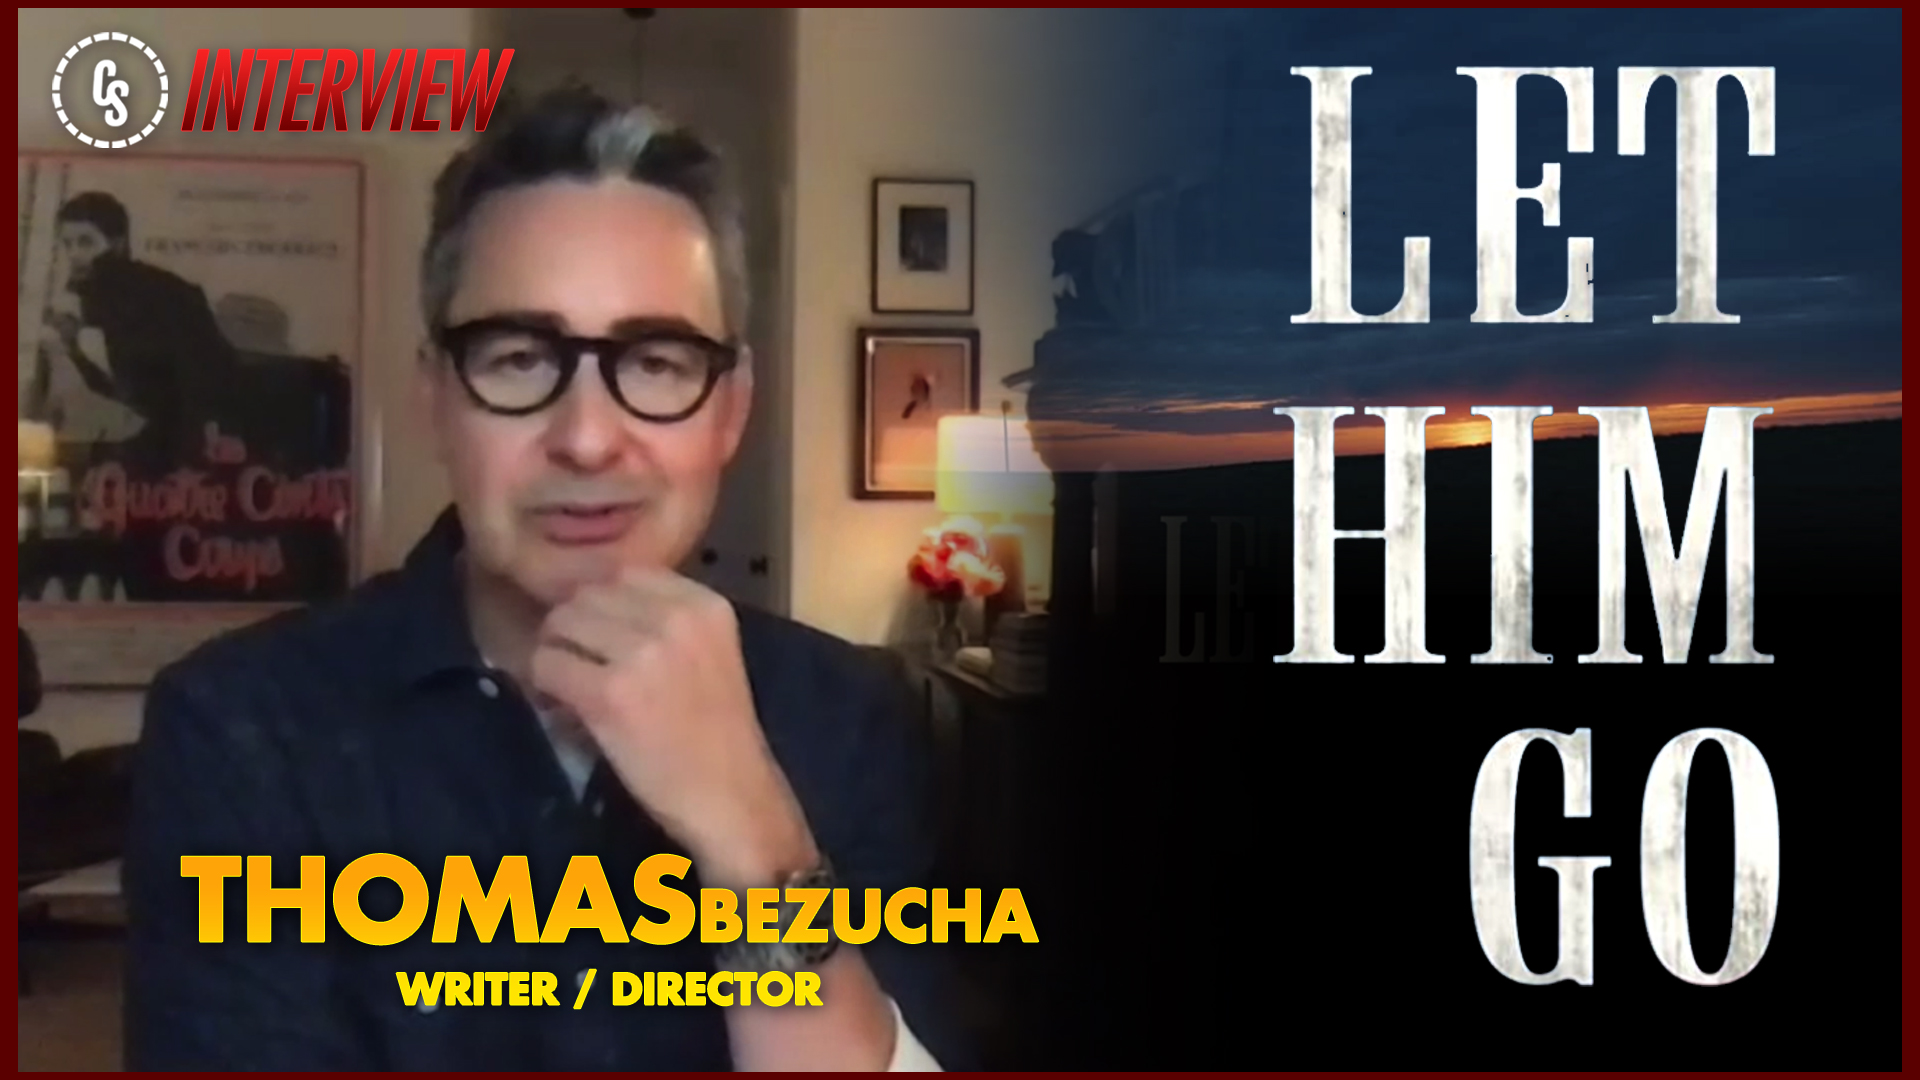 CS Video: Let Him Go Interview With Writer/Director Thomas Bezucha